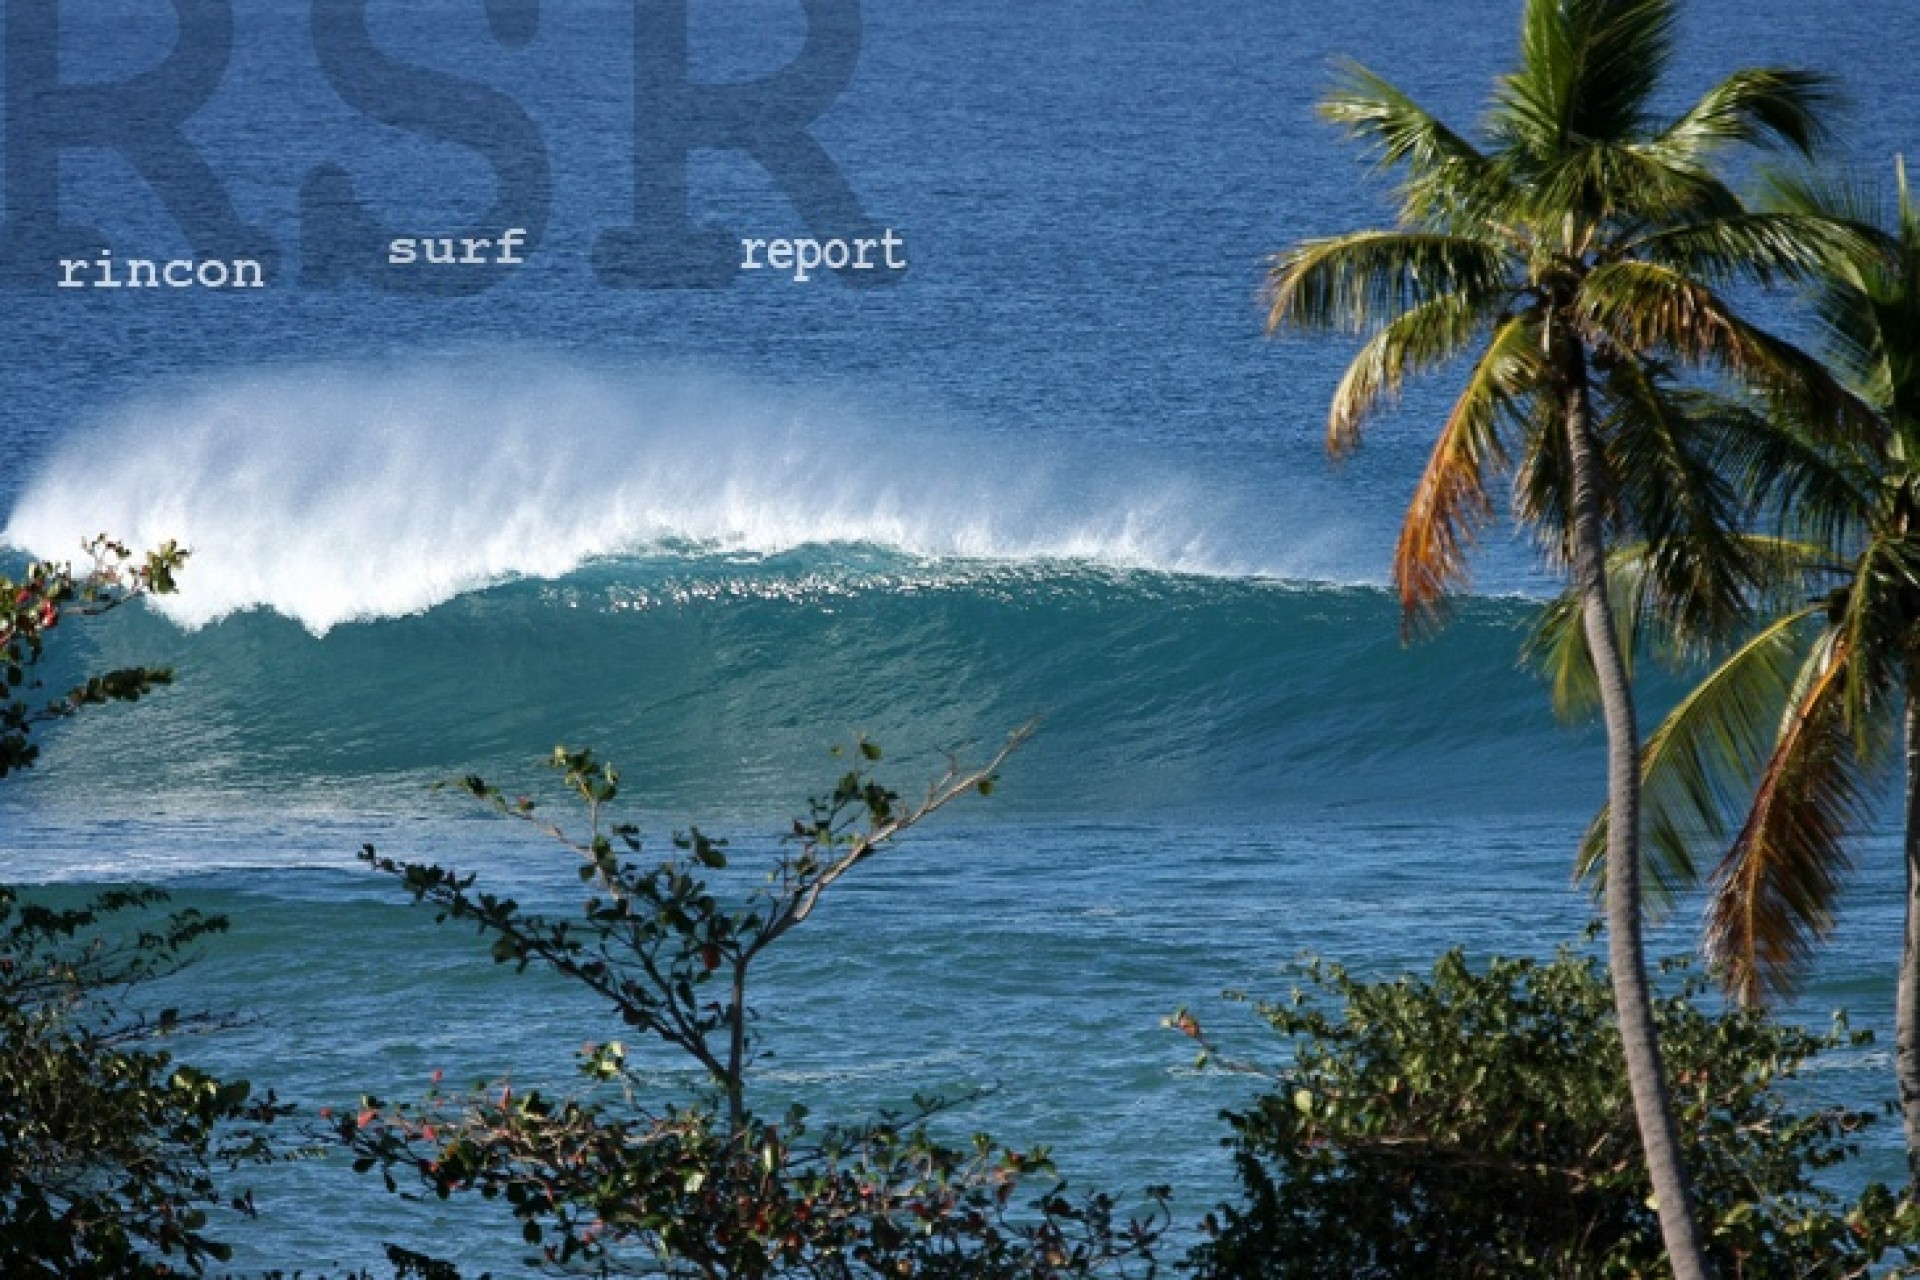 rinconsurfreport.com's photo of Sandy Beach - Puerto Rico